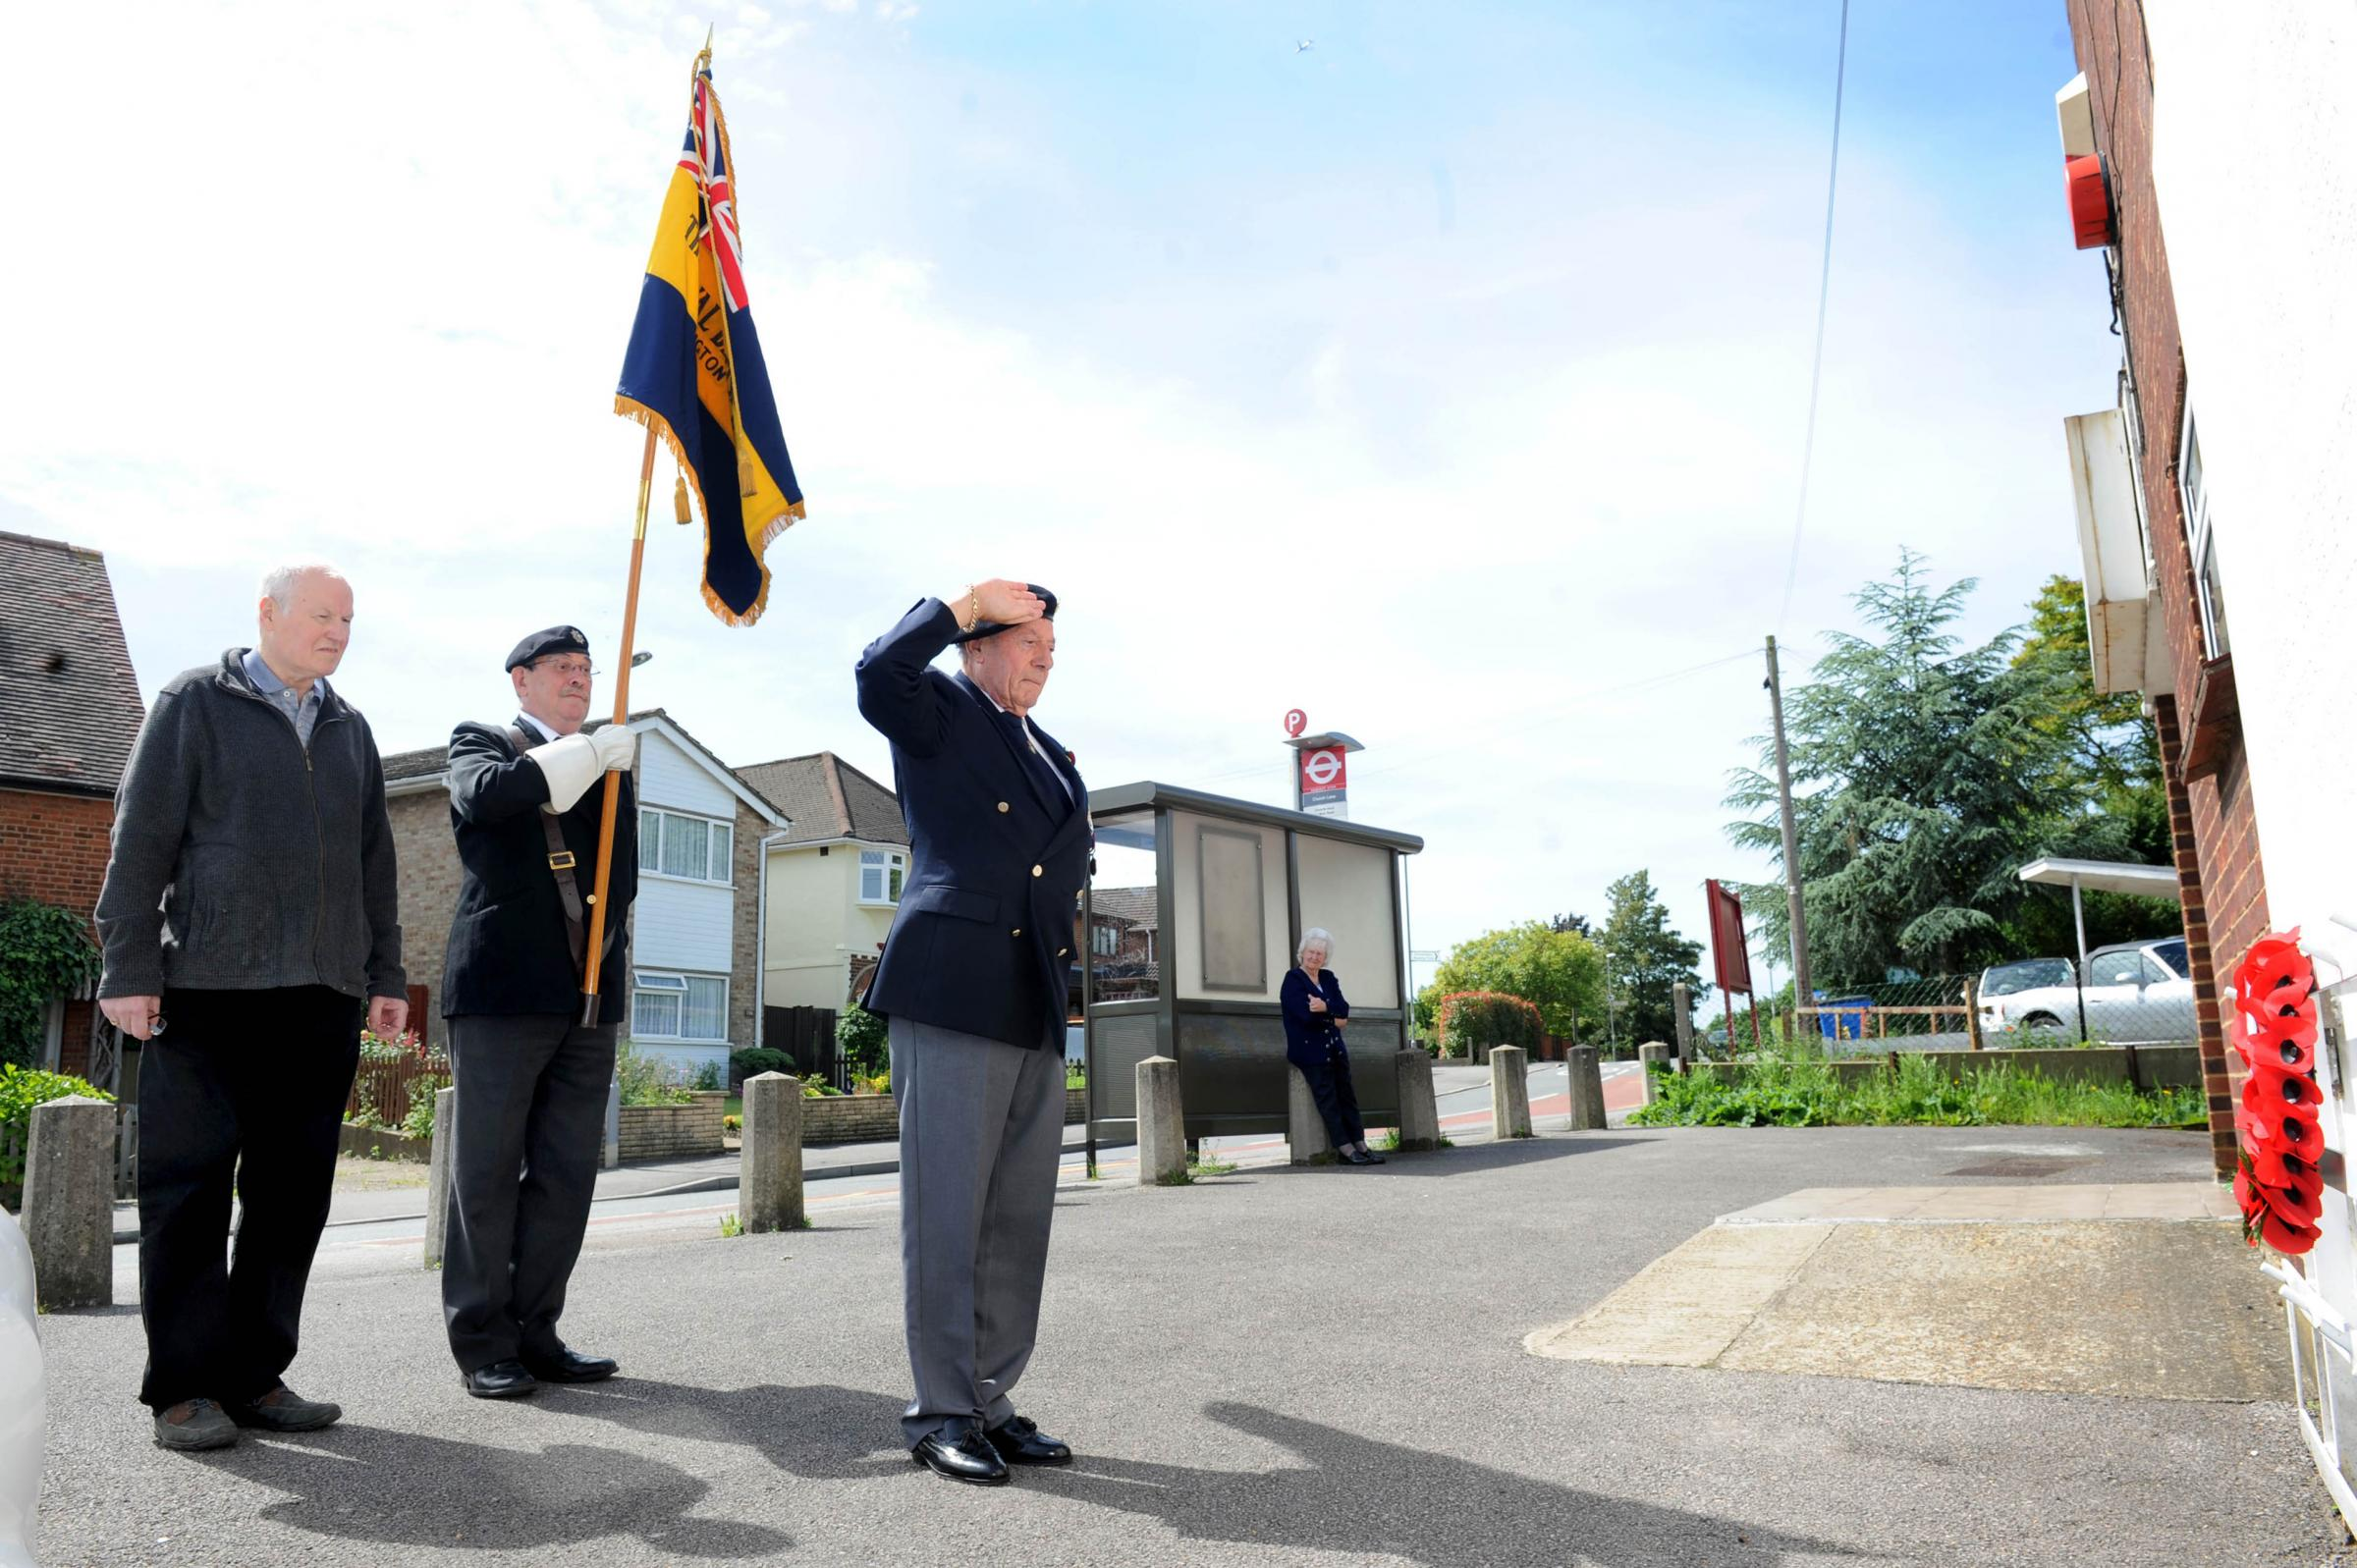 Chessington remembers D-Day Landings